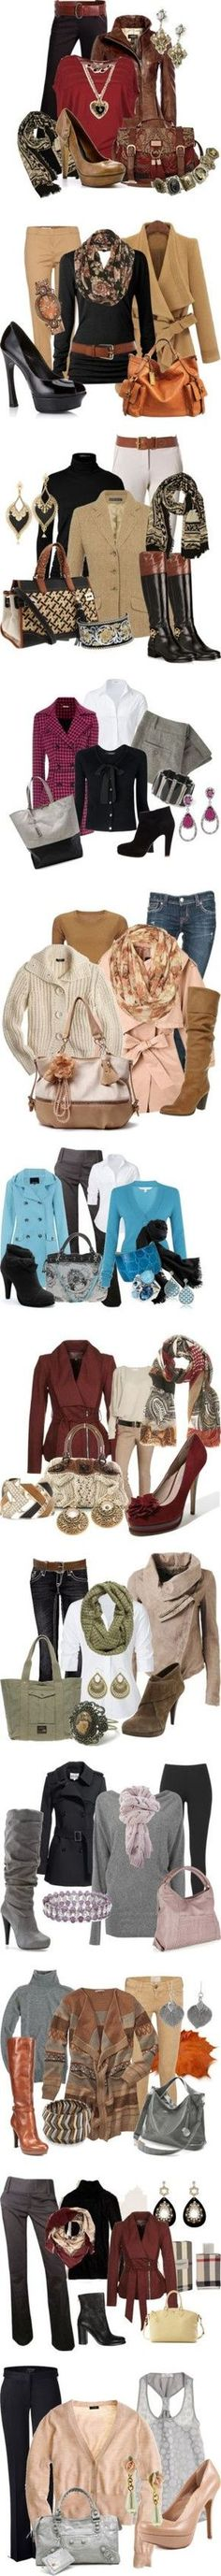 Winter and fall dress up